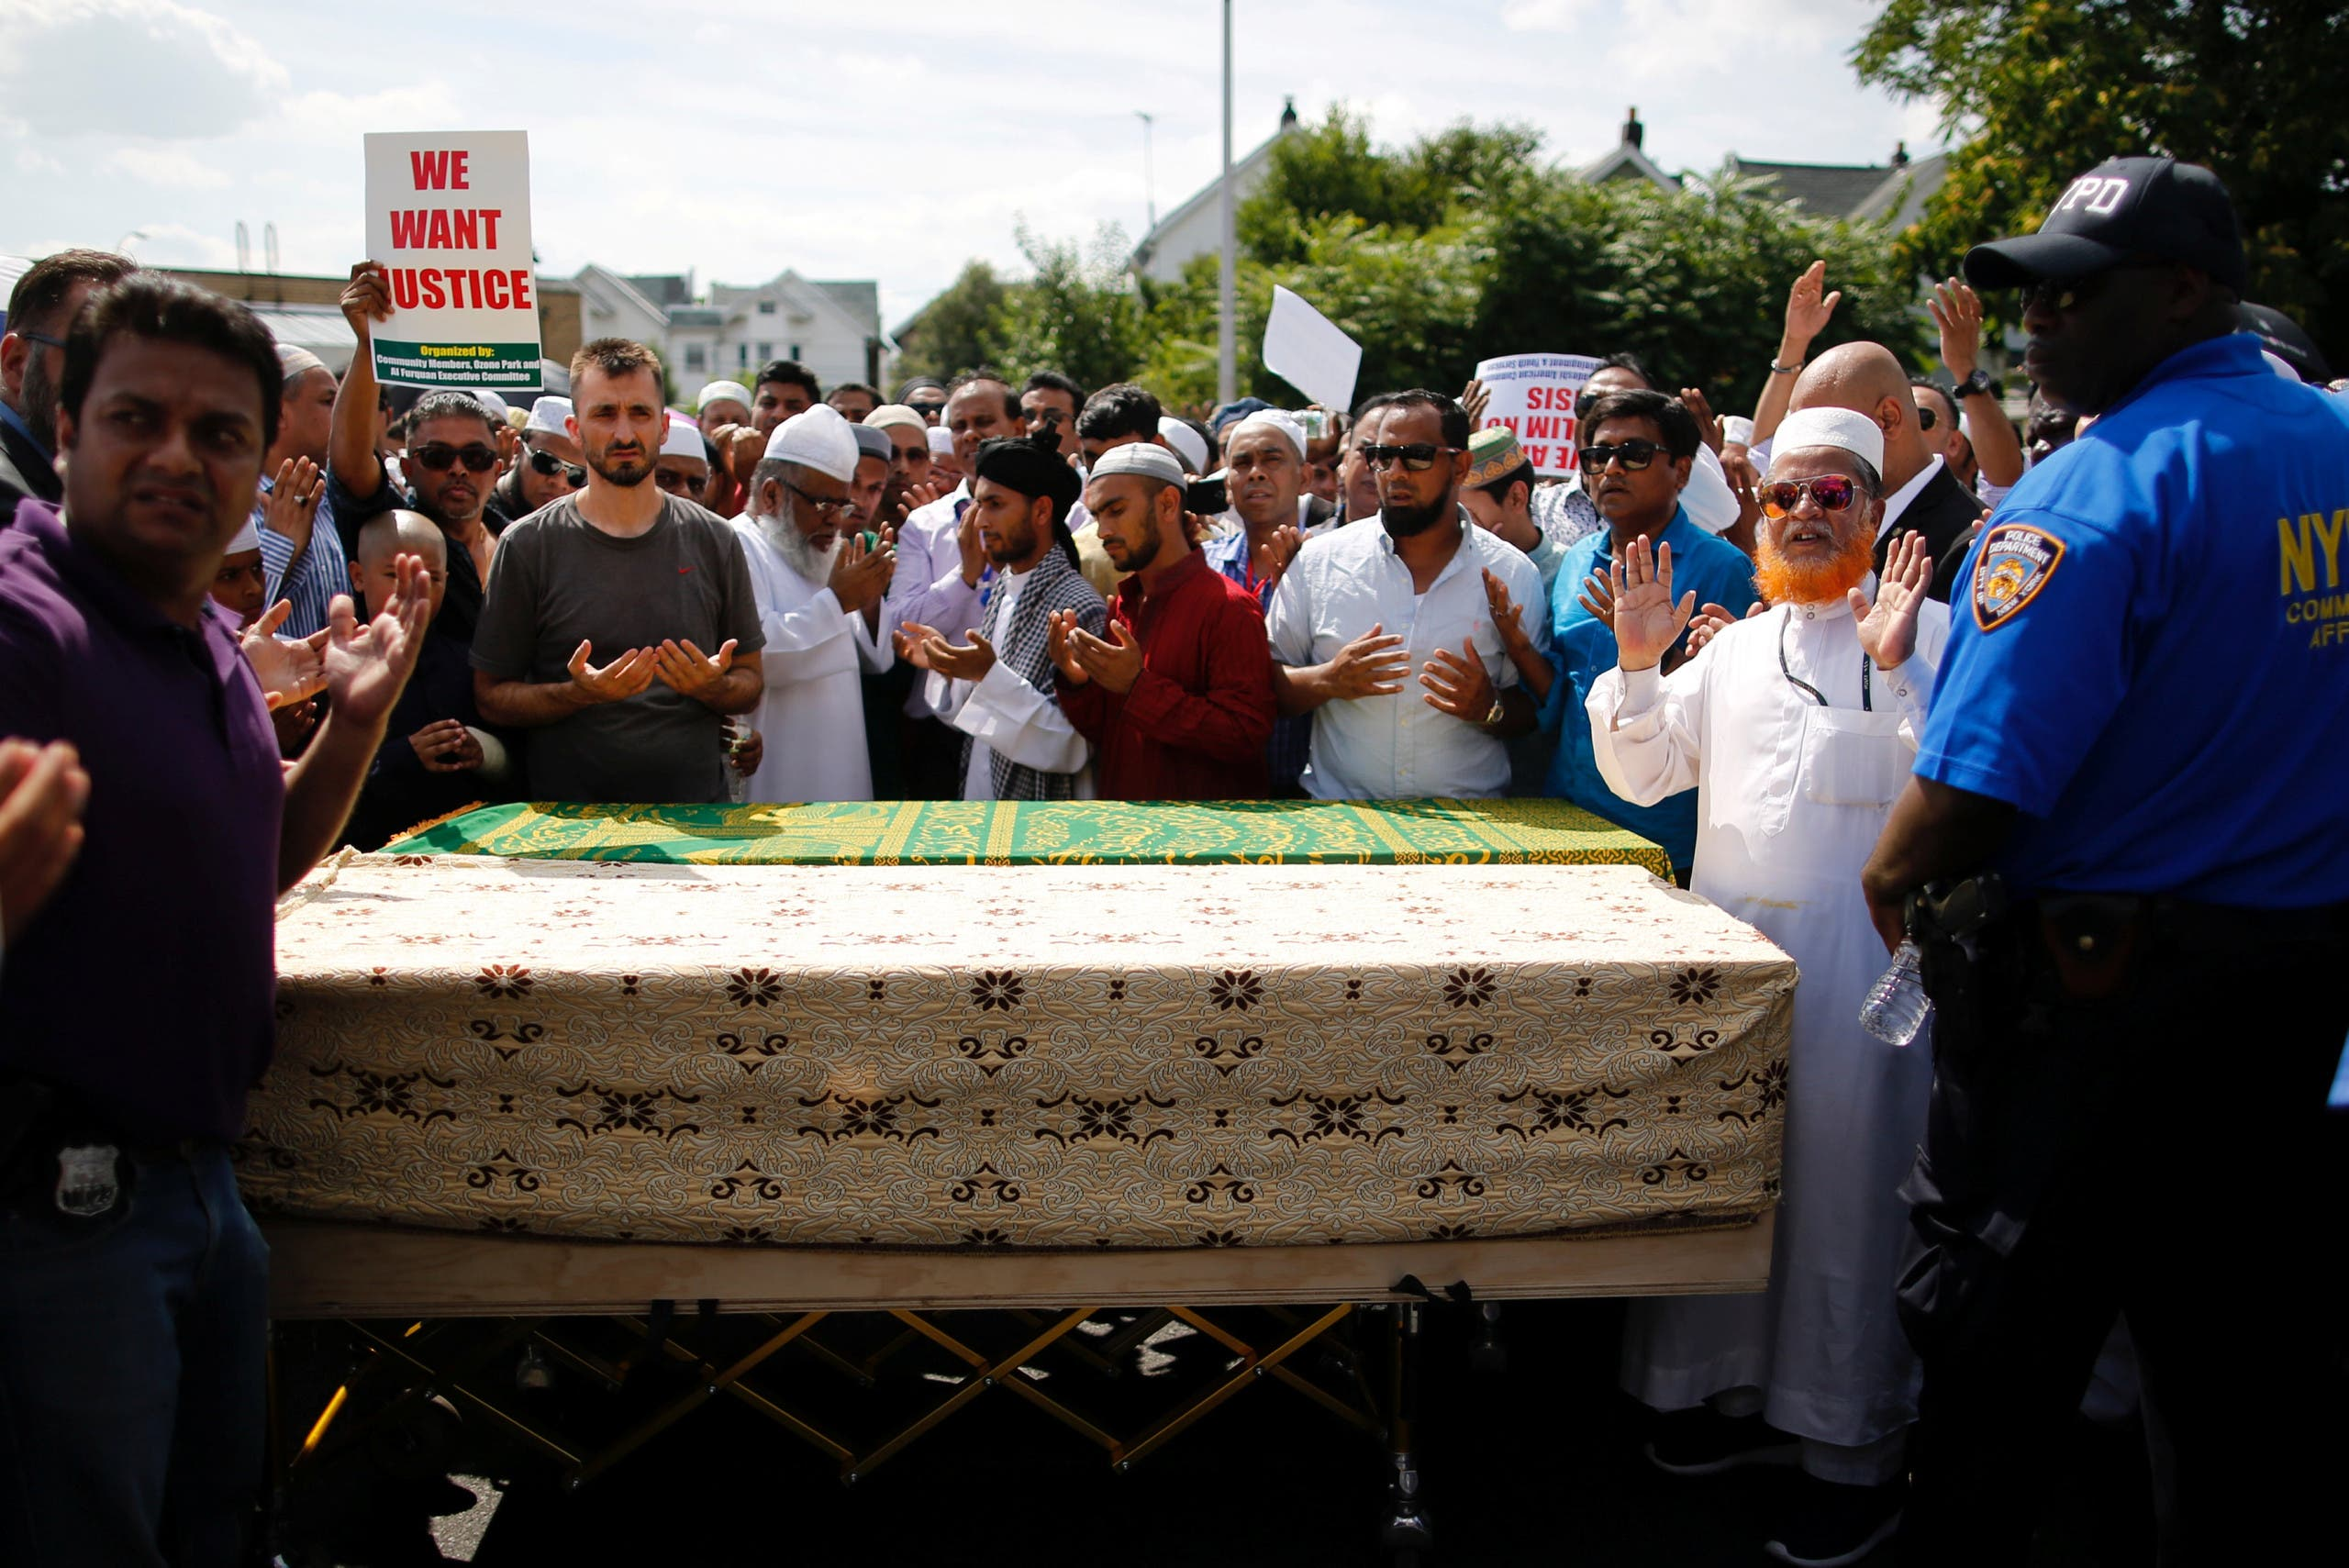 A crowd of community members pray next to the coffins as they gather for the funeral service of Imam Maulama Akonjee in the Queens borough of New York City, August 15, 2016. REUTERS